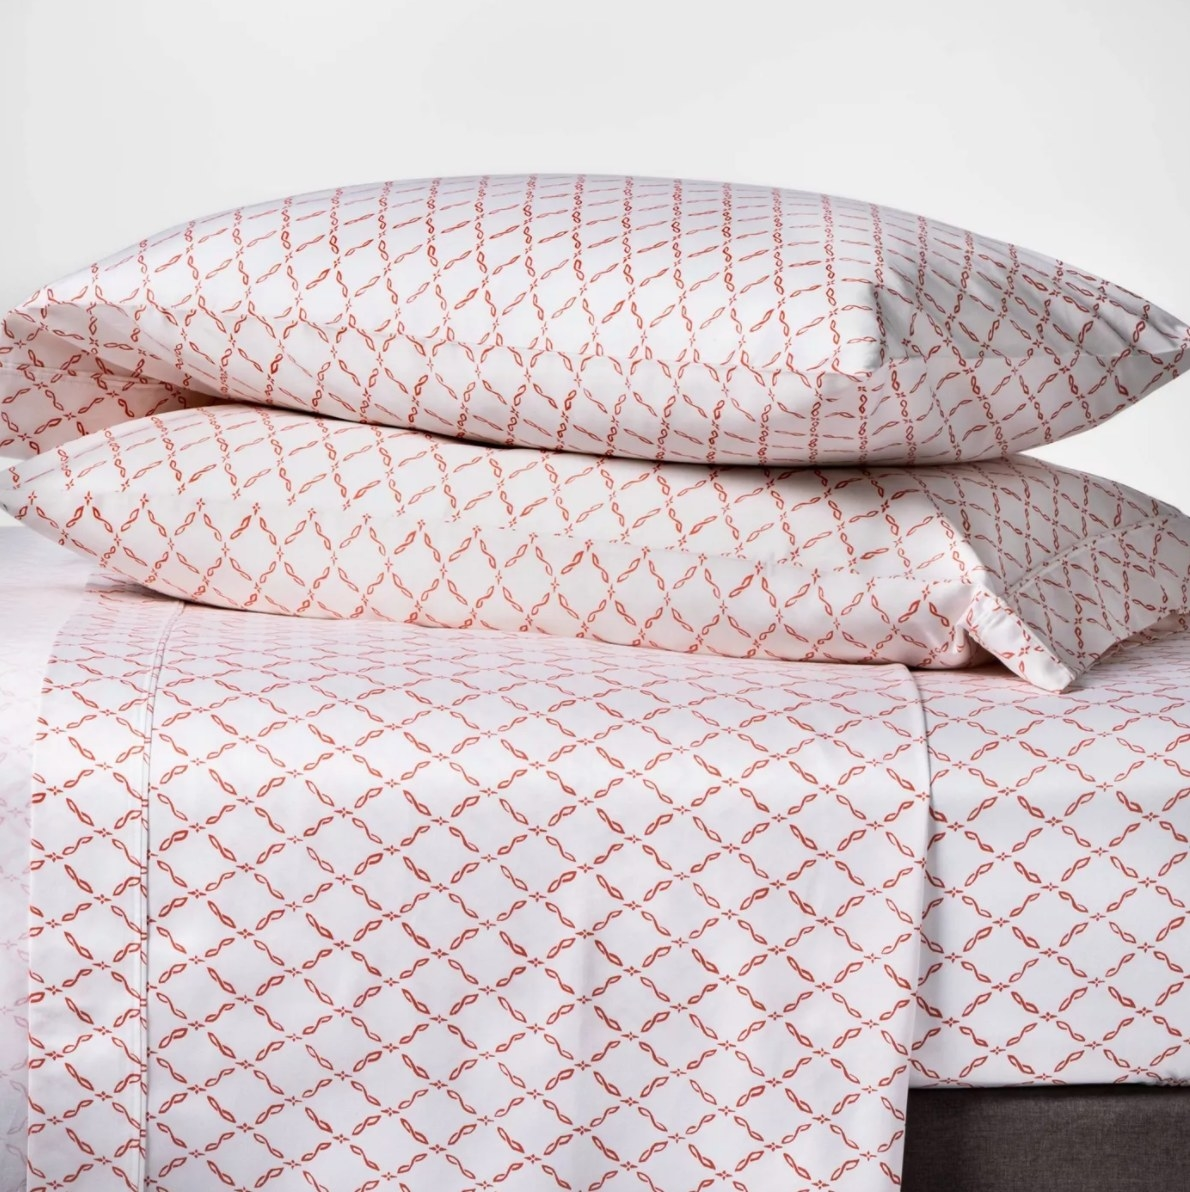 The 400 thread count sheet in coral lattice